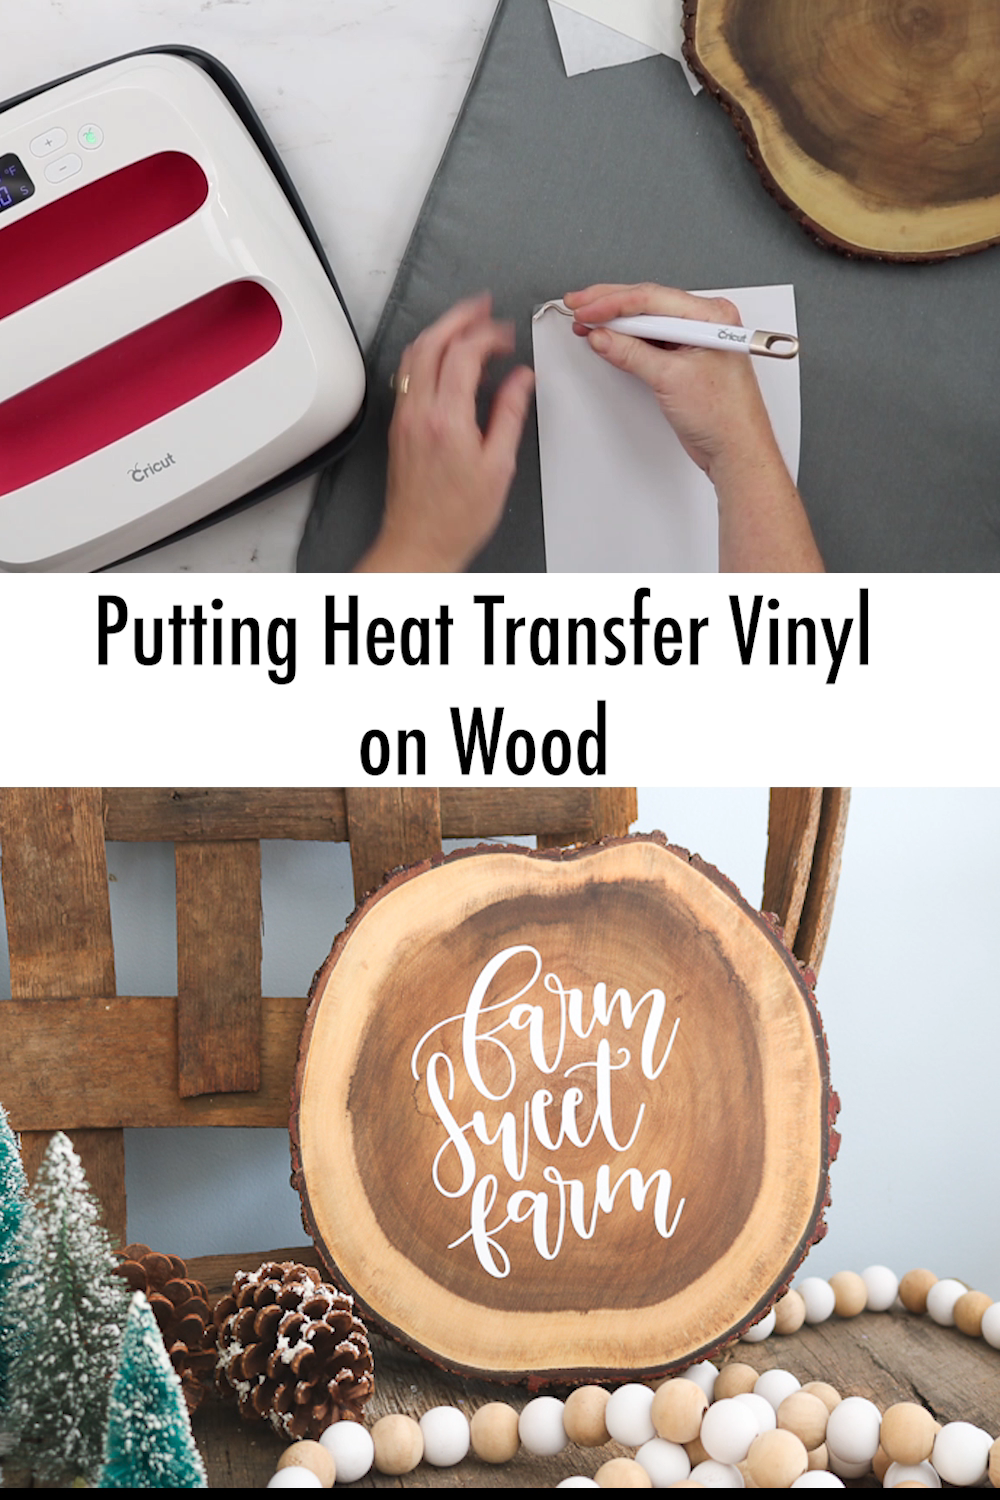 How to Put Heat Transfer Vinyl on Wood